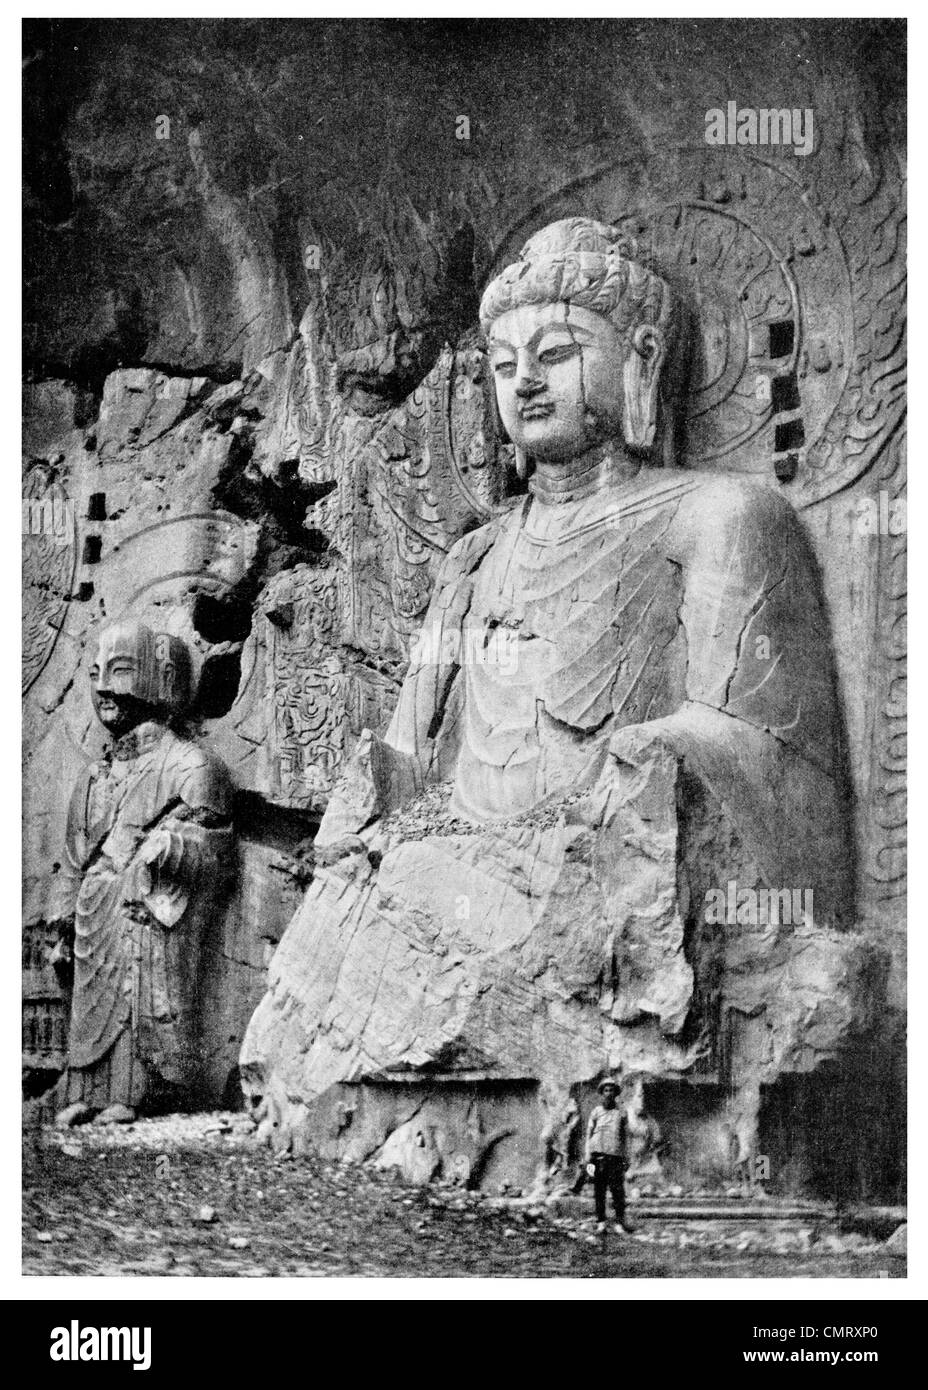 1923 Lung Men stone carving at Honanfu cave temple - Stock Image